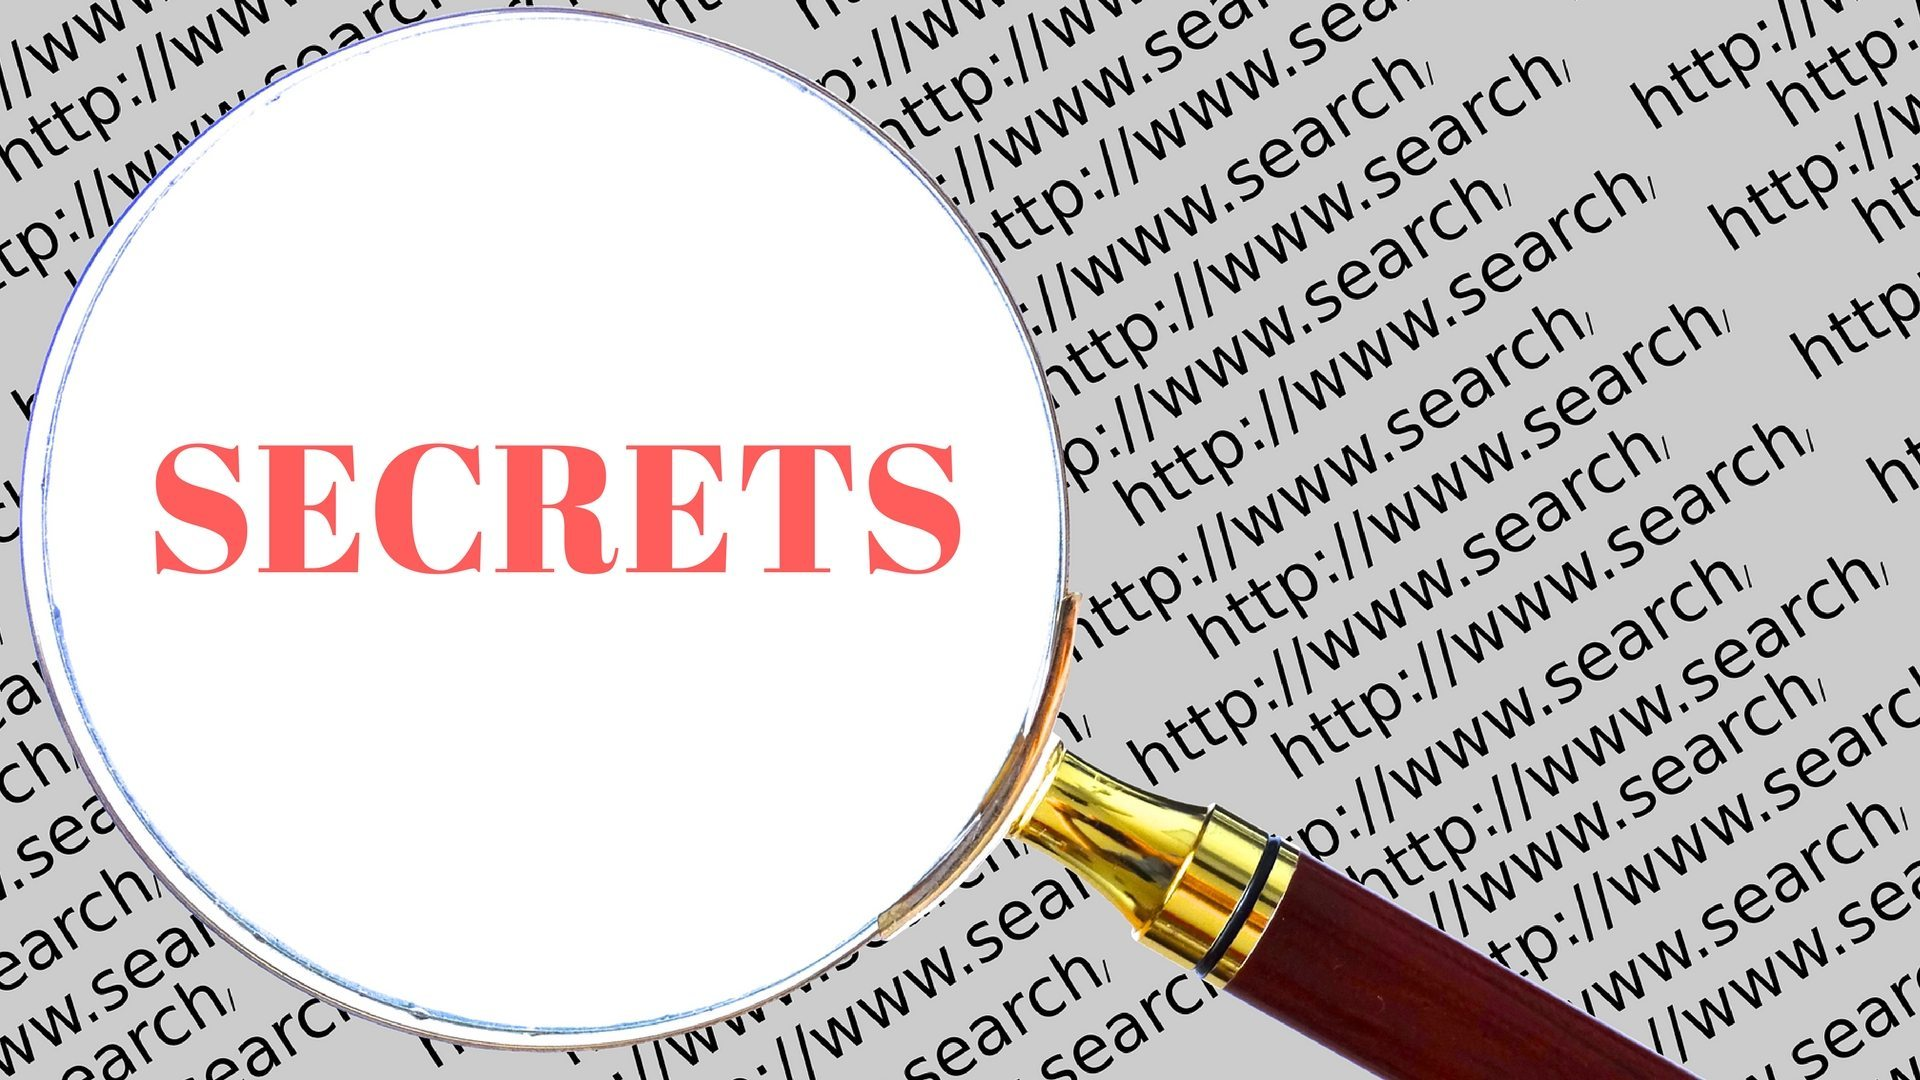 SECRETS - Pixabay - Canva